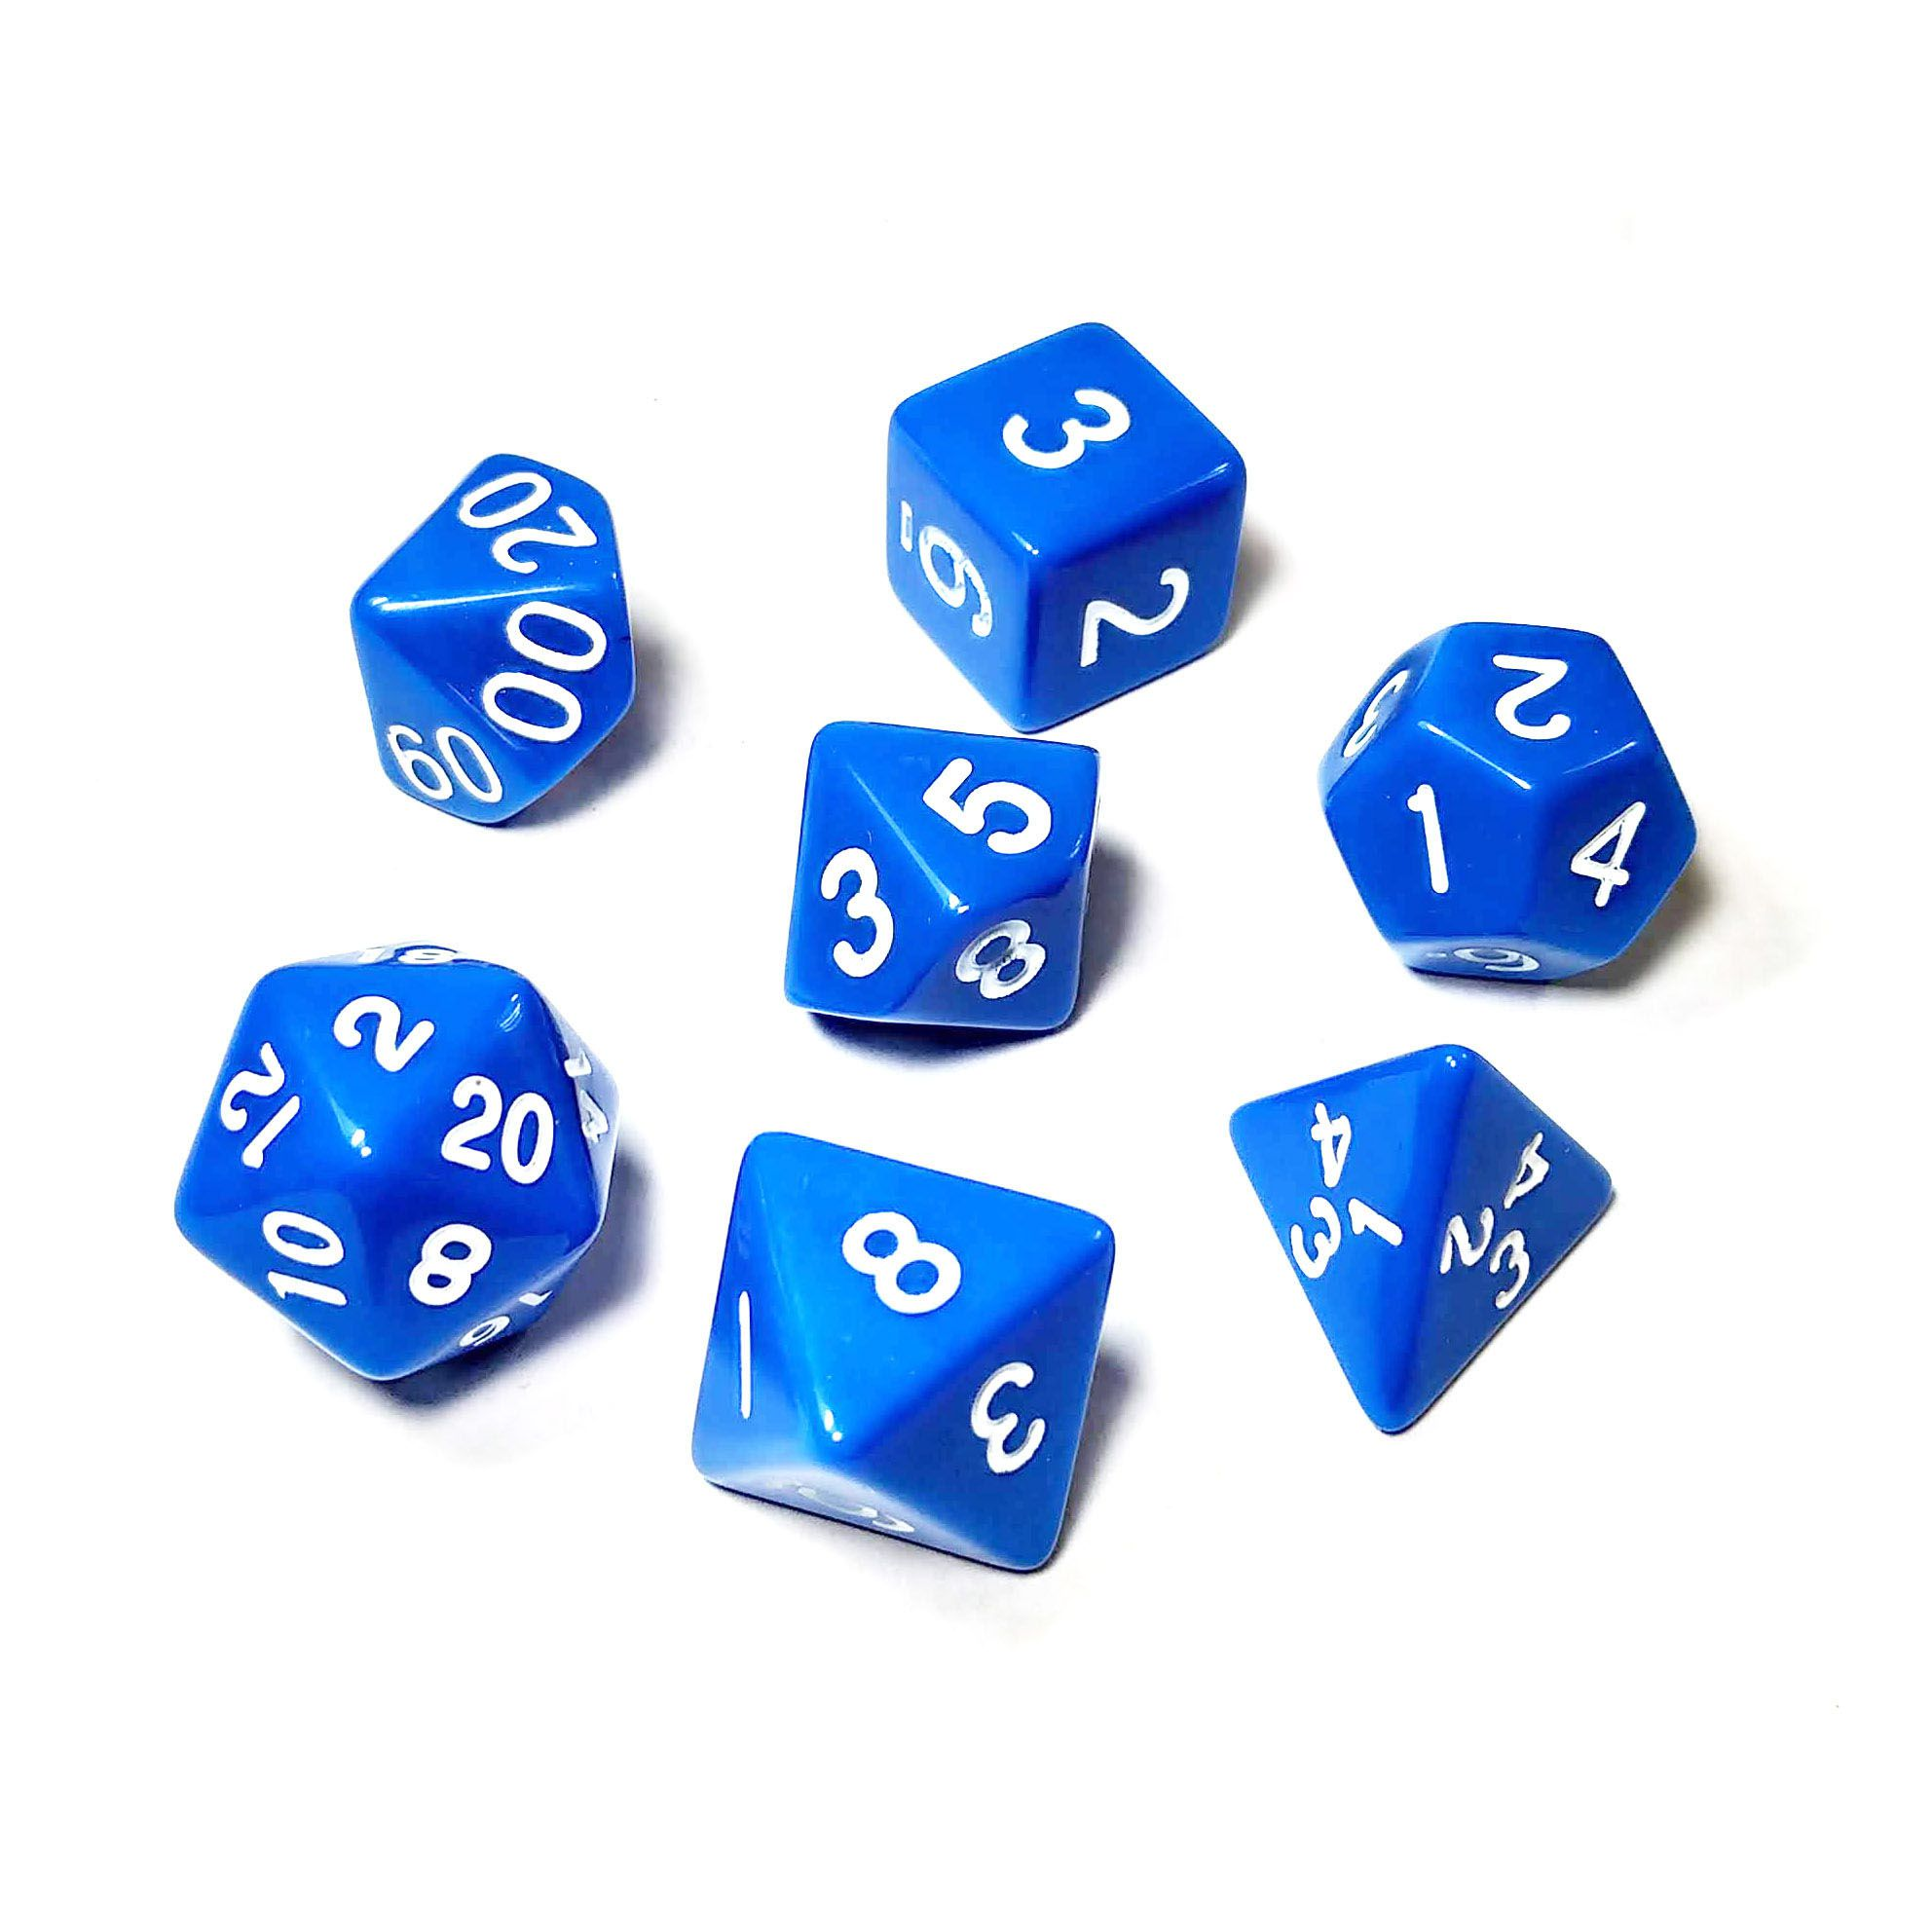 Conjunto de 7 Dados para RPG Azul (D4, D6, D8, D10, D10%, D12, D20)  - Place Games